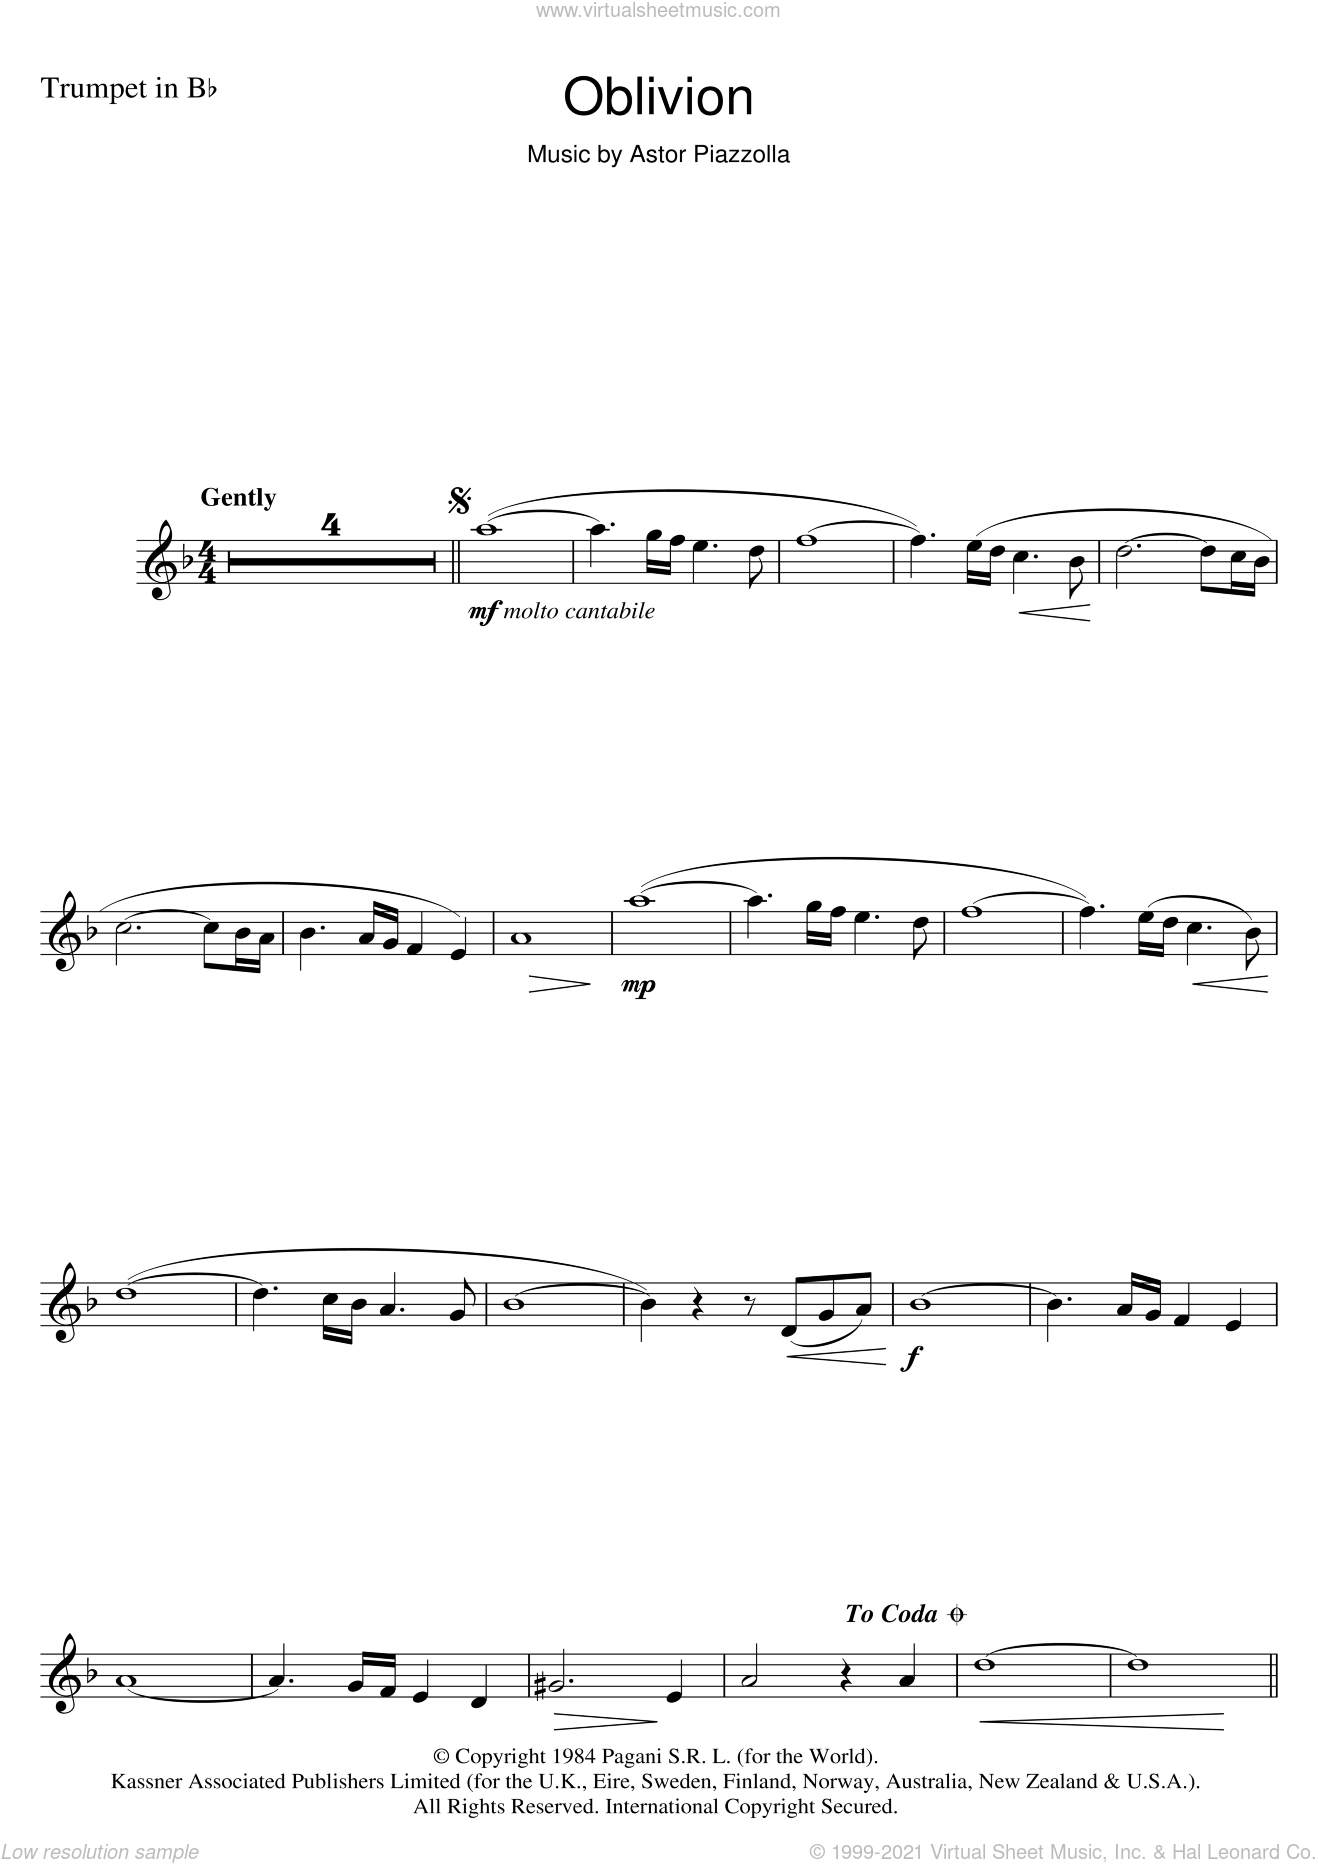 Piazzolla - Oblivion sheet music for trumpet solo [PDF]